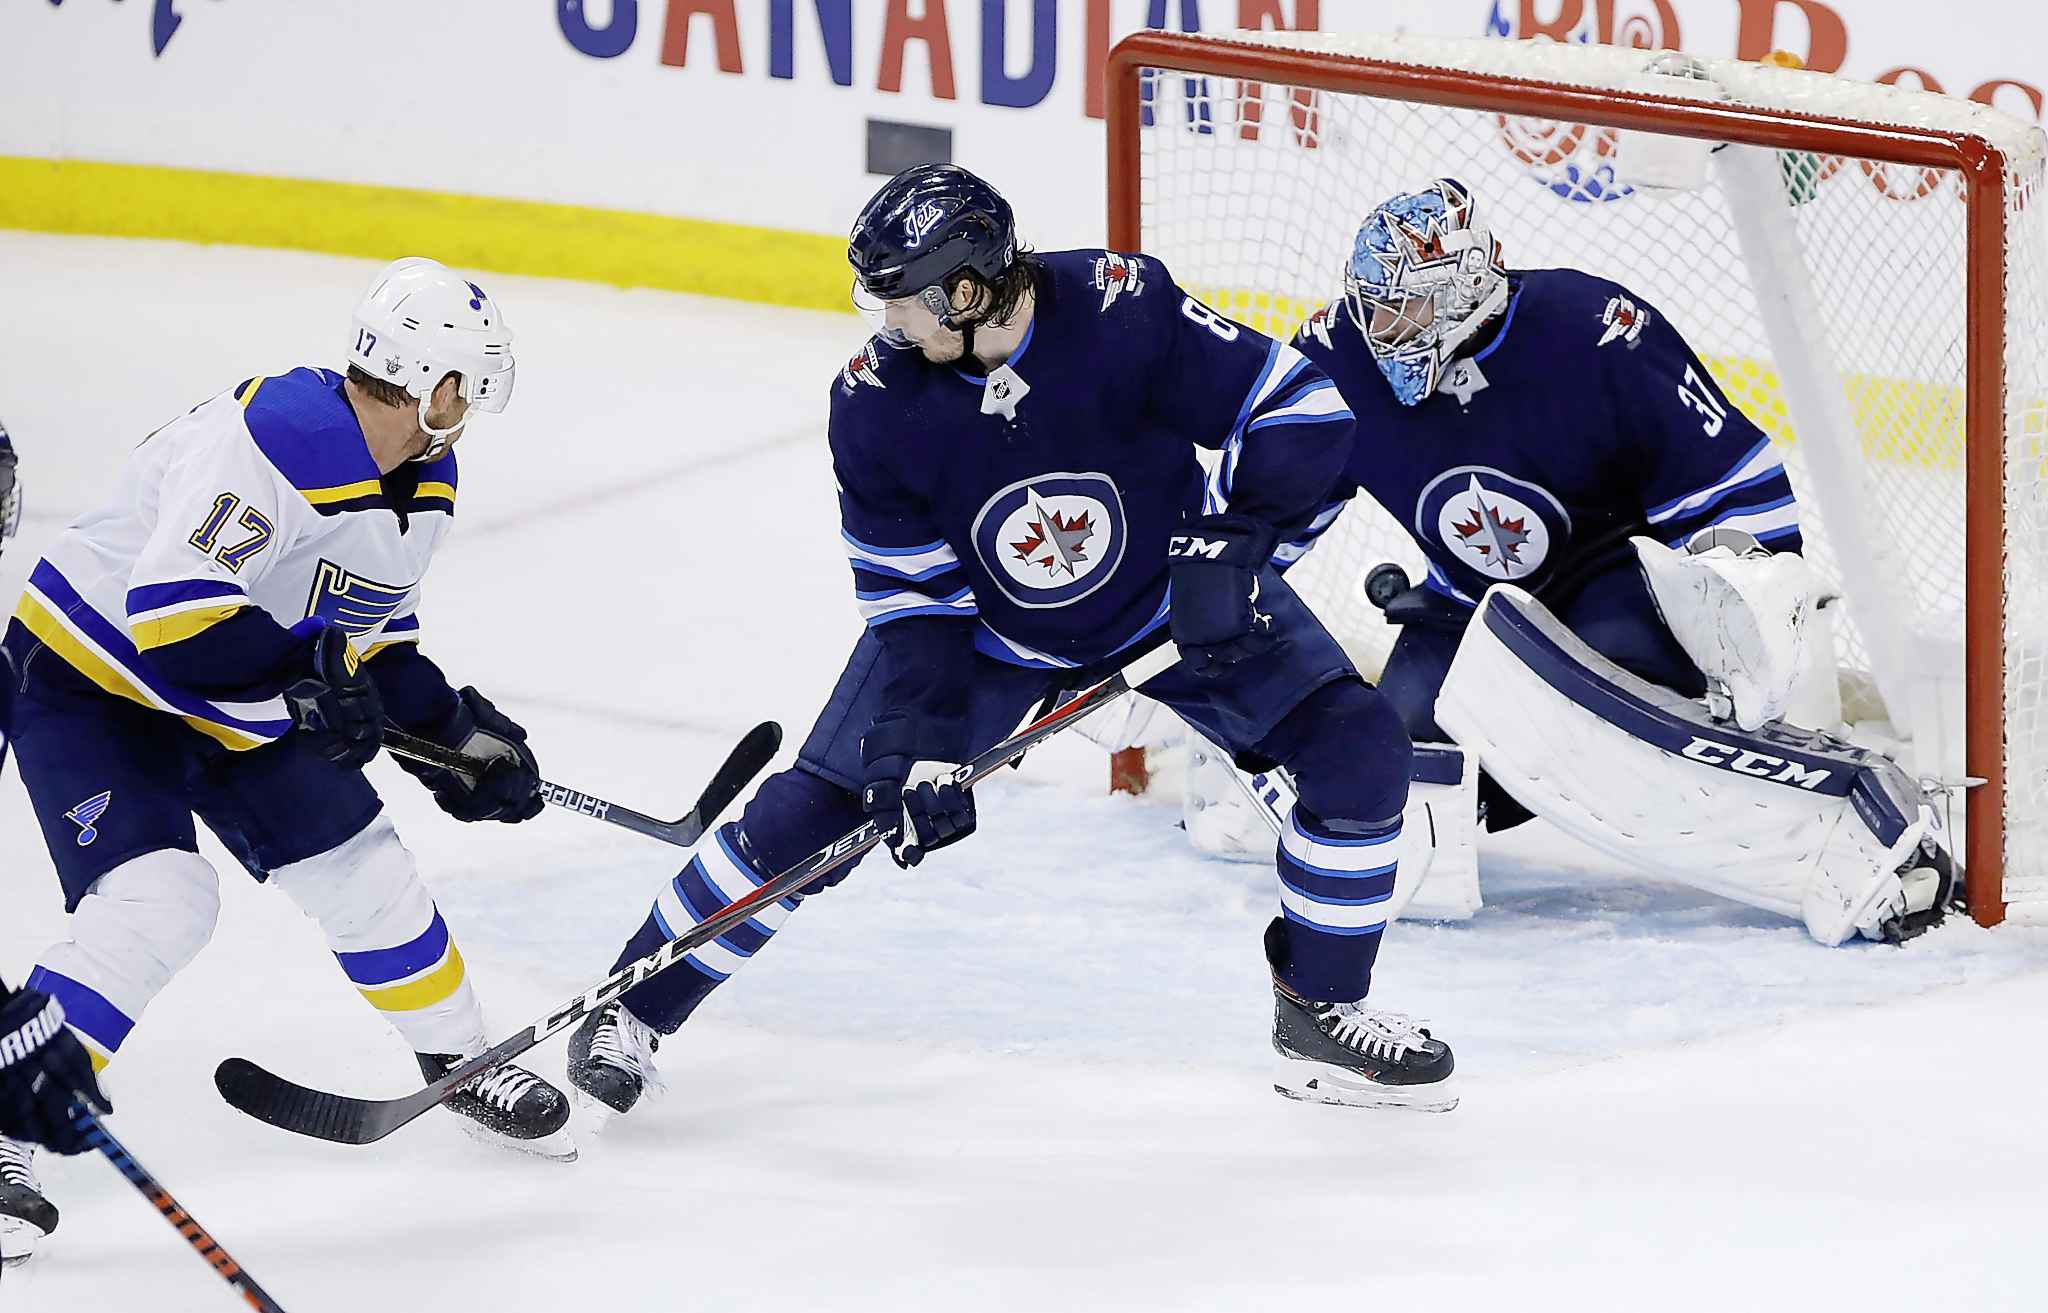 St. Louis Blues' Jaden Schwartz, left, scores the game-winning goal against the Winnipeg Jets with 15 seconds left in the third period to win game 5 of their first-round playoff series.